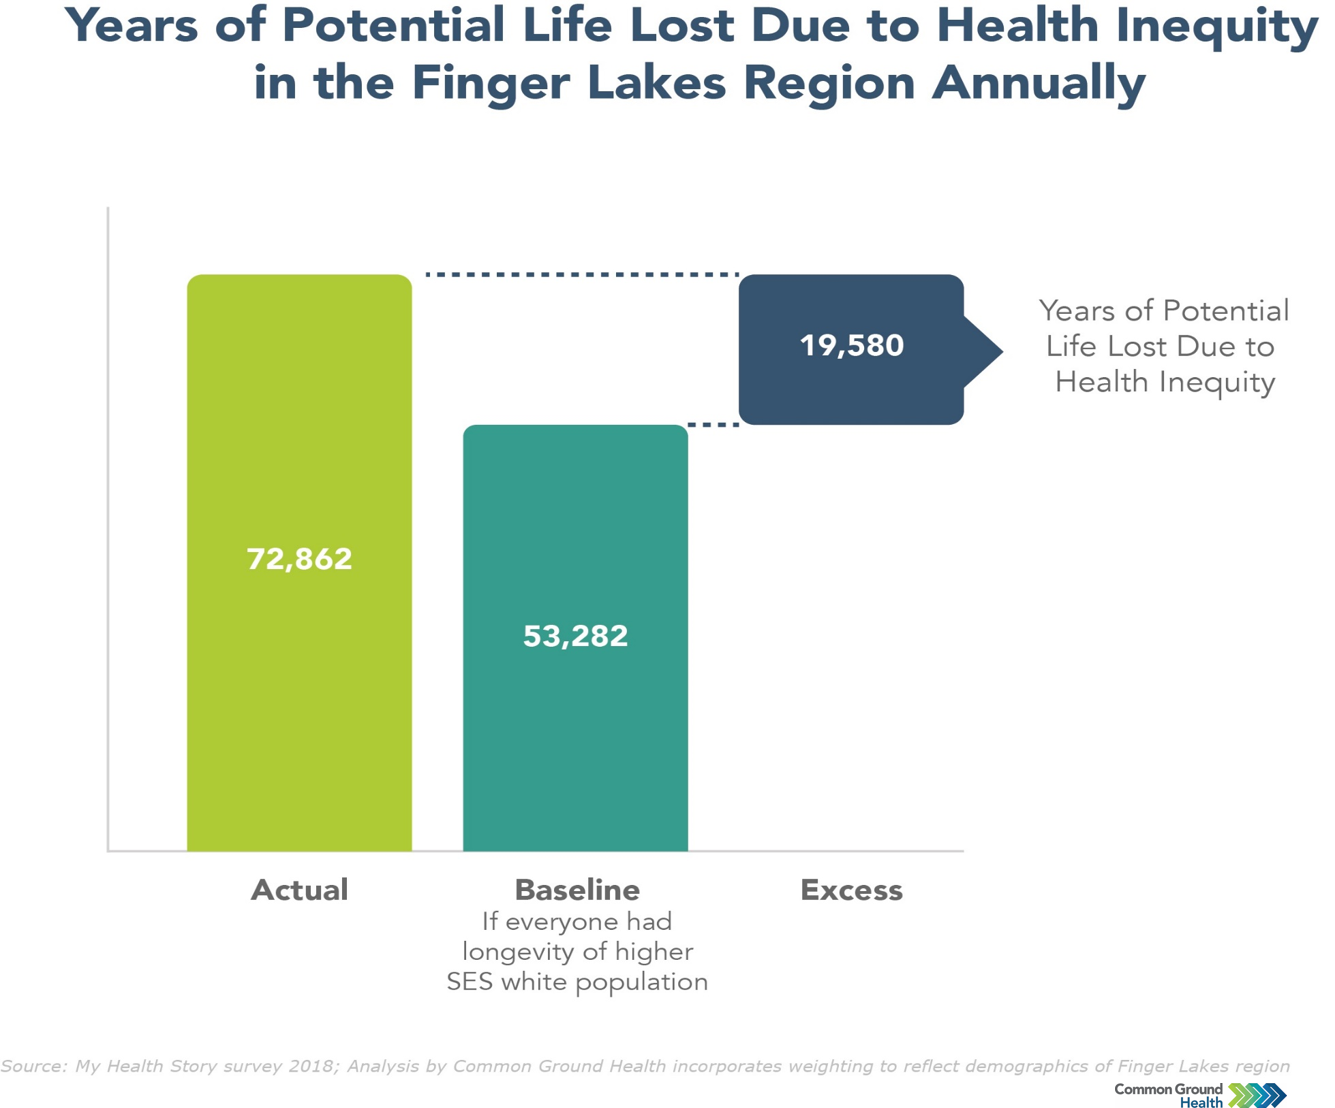 Years of Potential Life Lost Due to Health Inequity